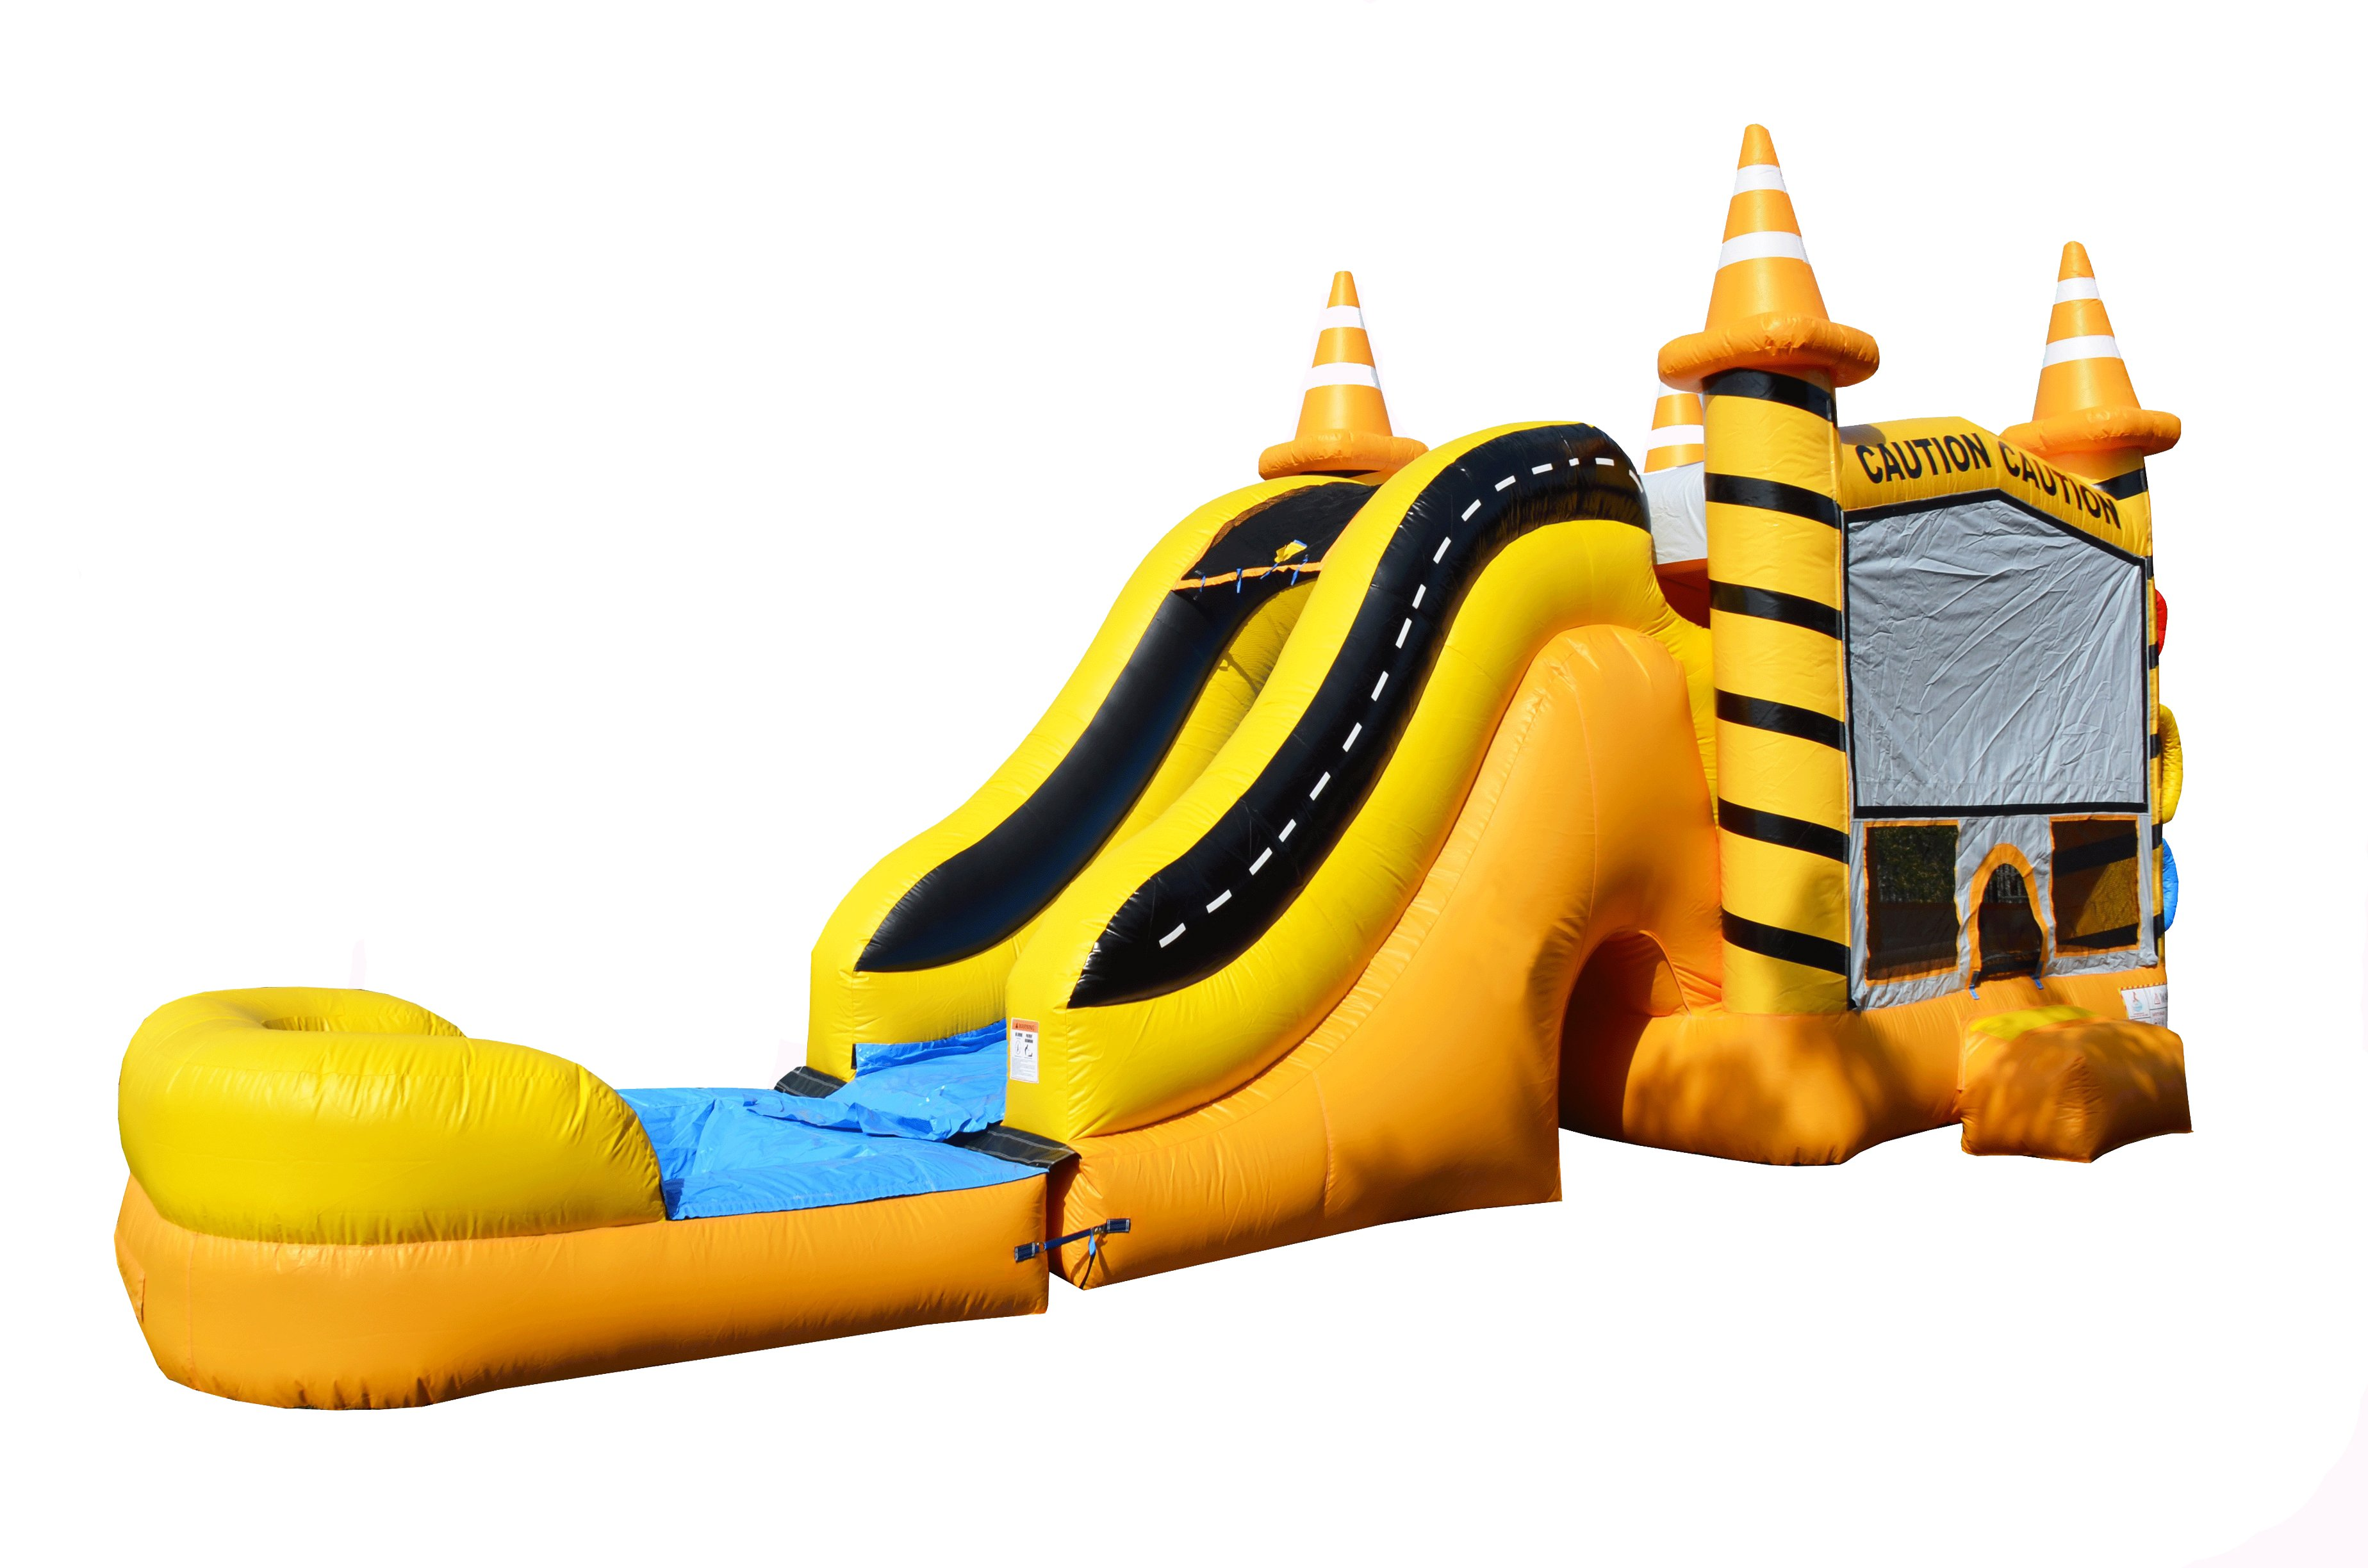 Stupendous Bounce Houses Inflatable Slides Rental Kissimmee Orlando Download Free Architecture Designs Scobabritishbridgeorg